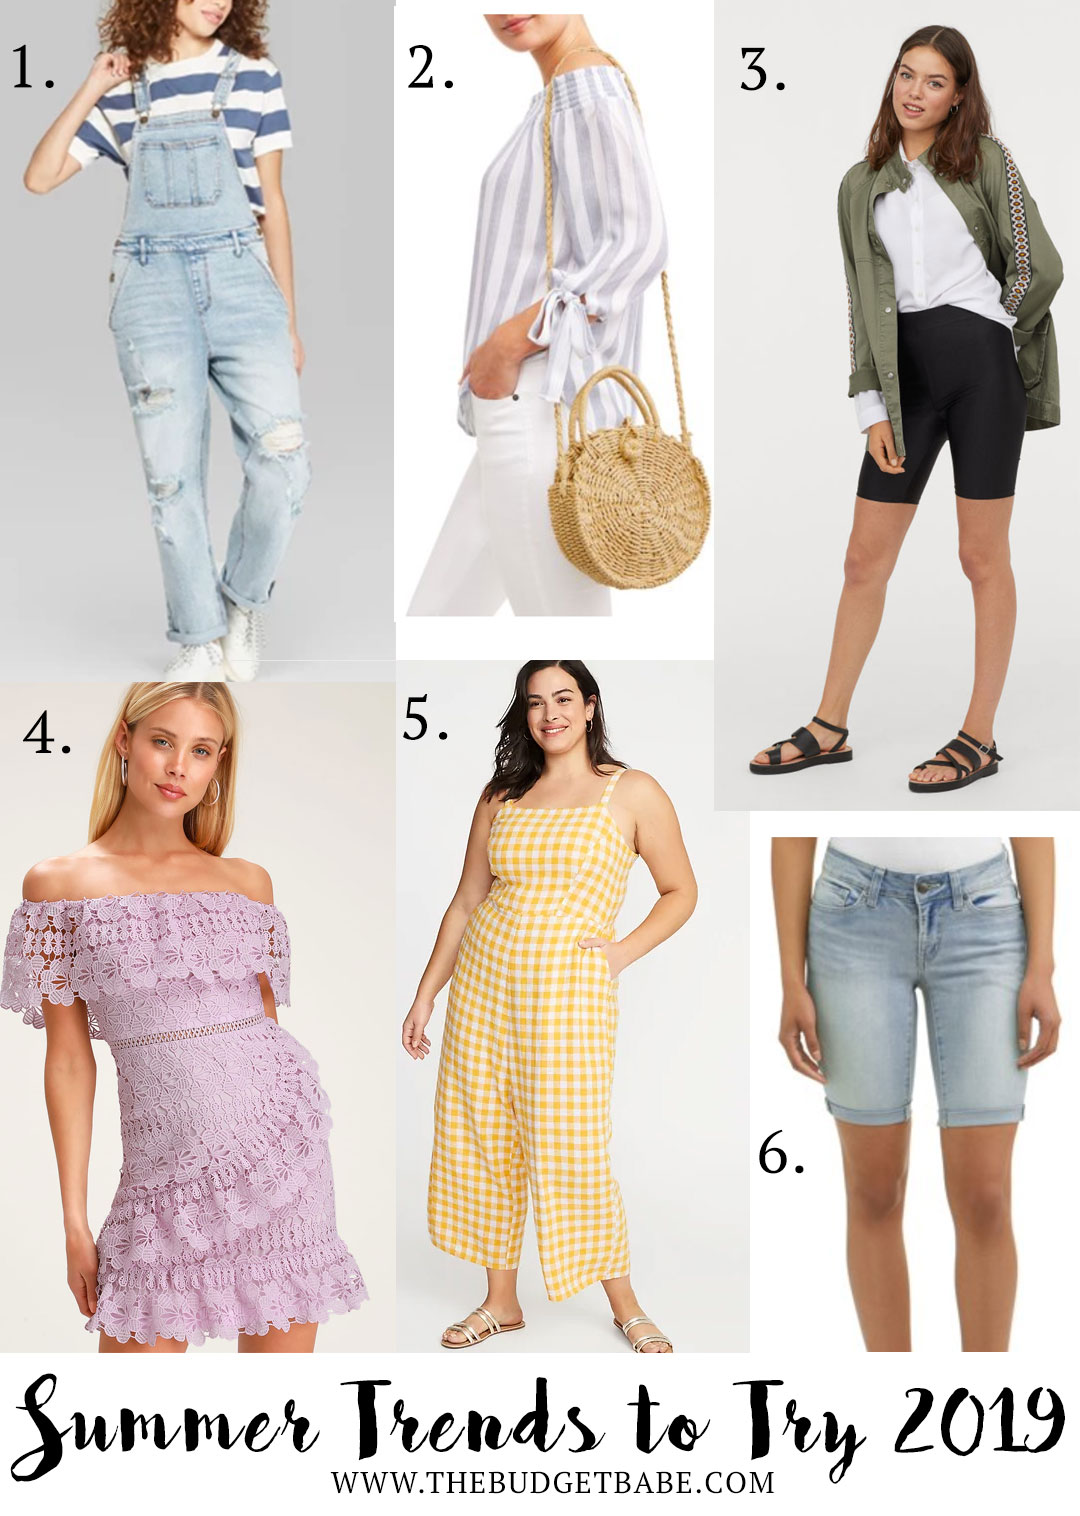 Summer Fashion Trends to Try in 2019